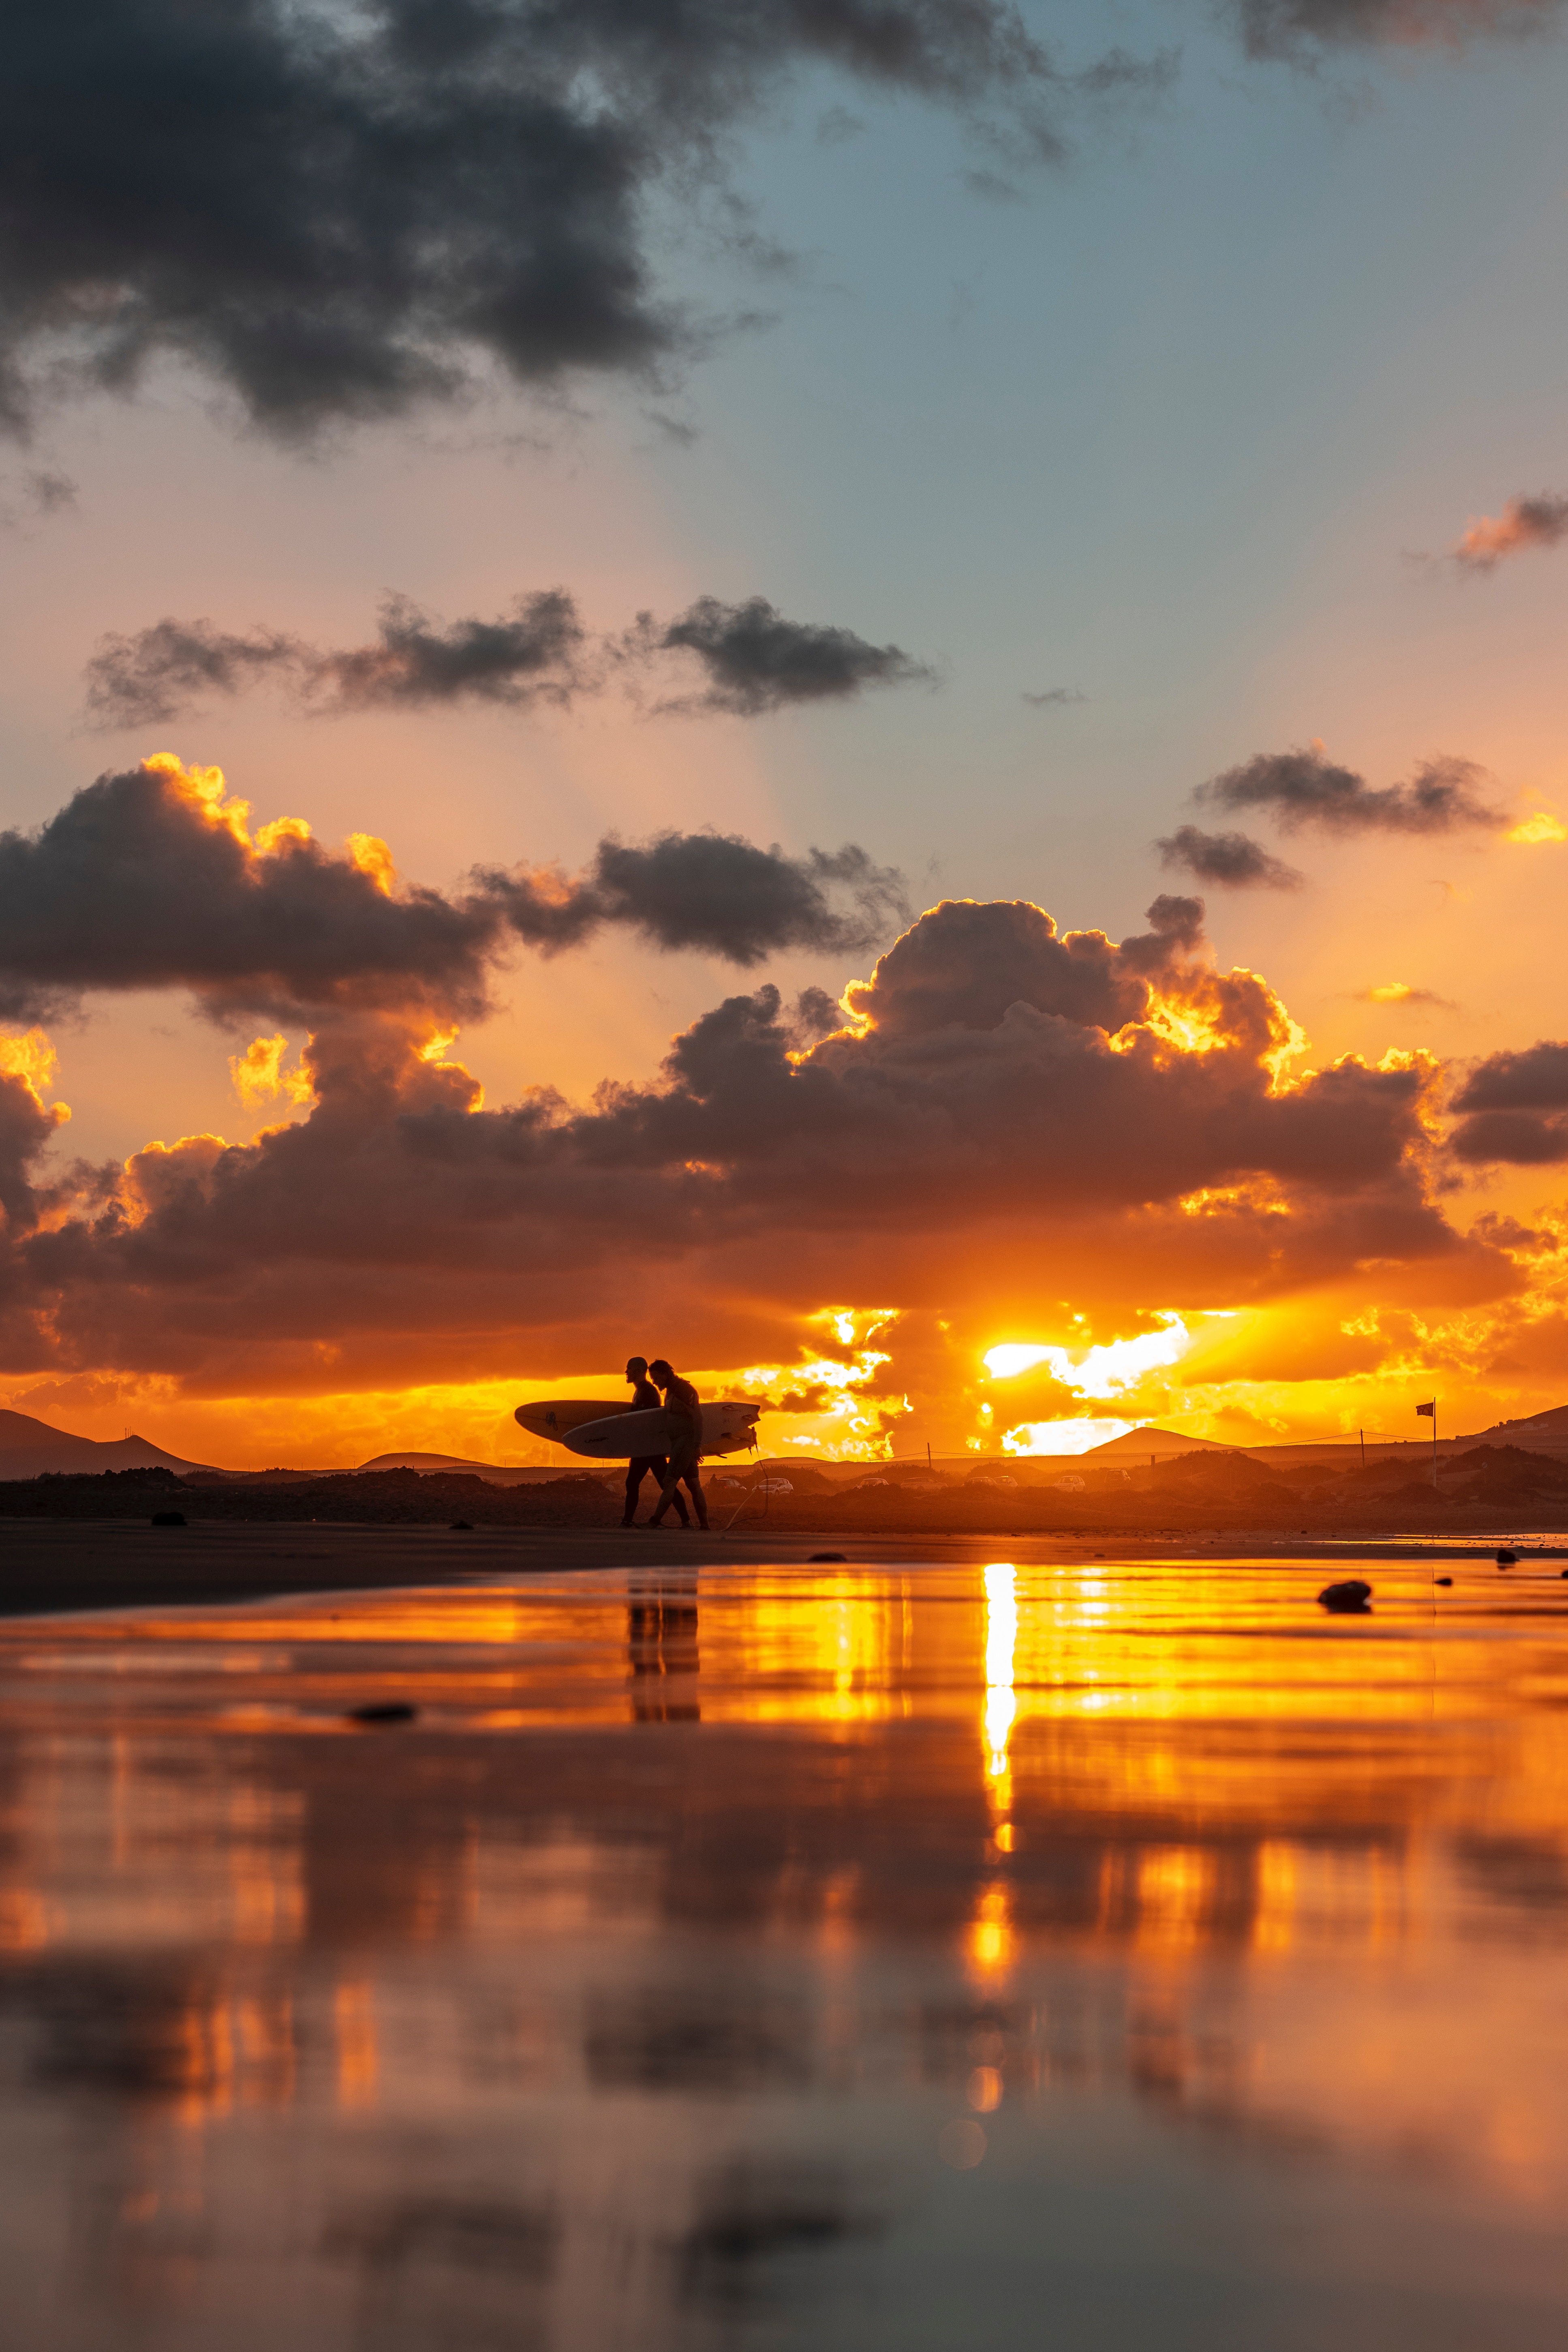 90746 download wallpaper Nature, Ocean, Silhouettes, Serfing, Surfers, Sunset screensavers and pictures for free